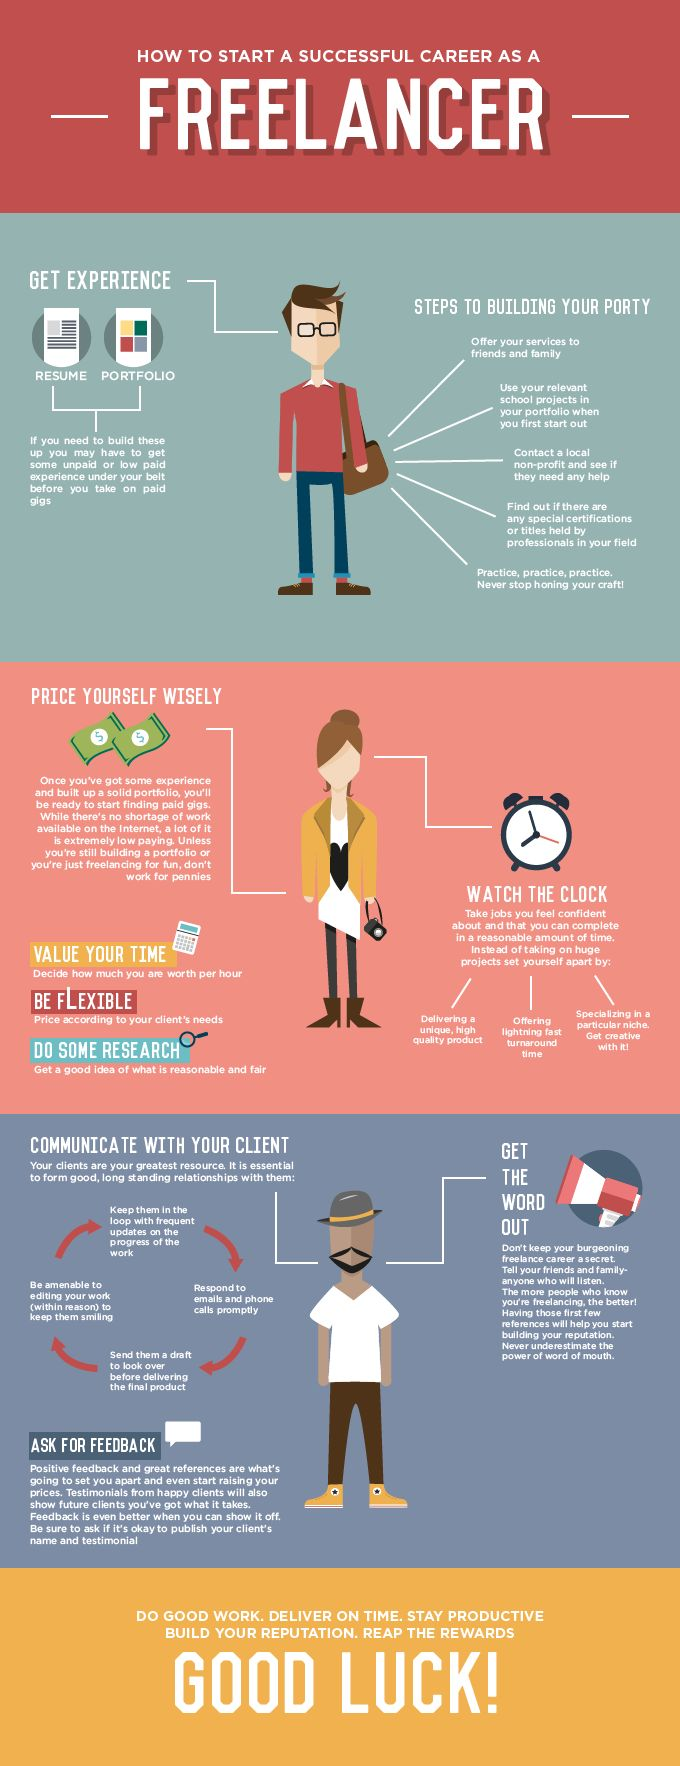 How You Can Become a Successful Freelancer Right Now!